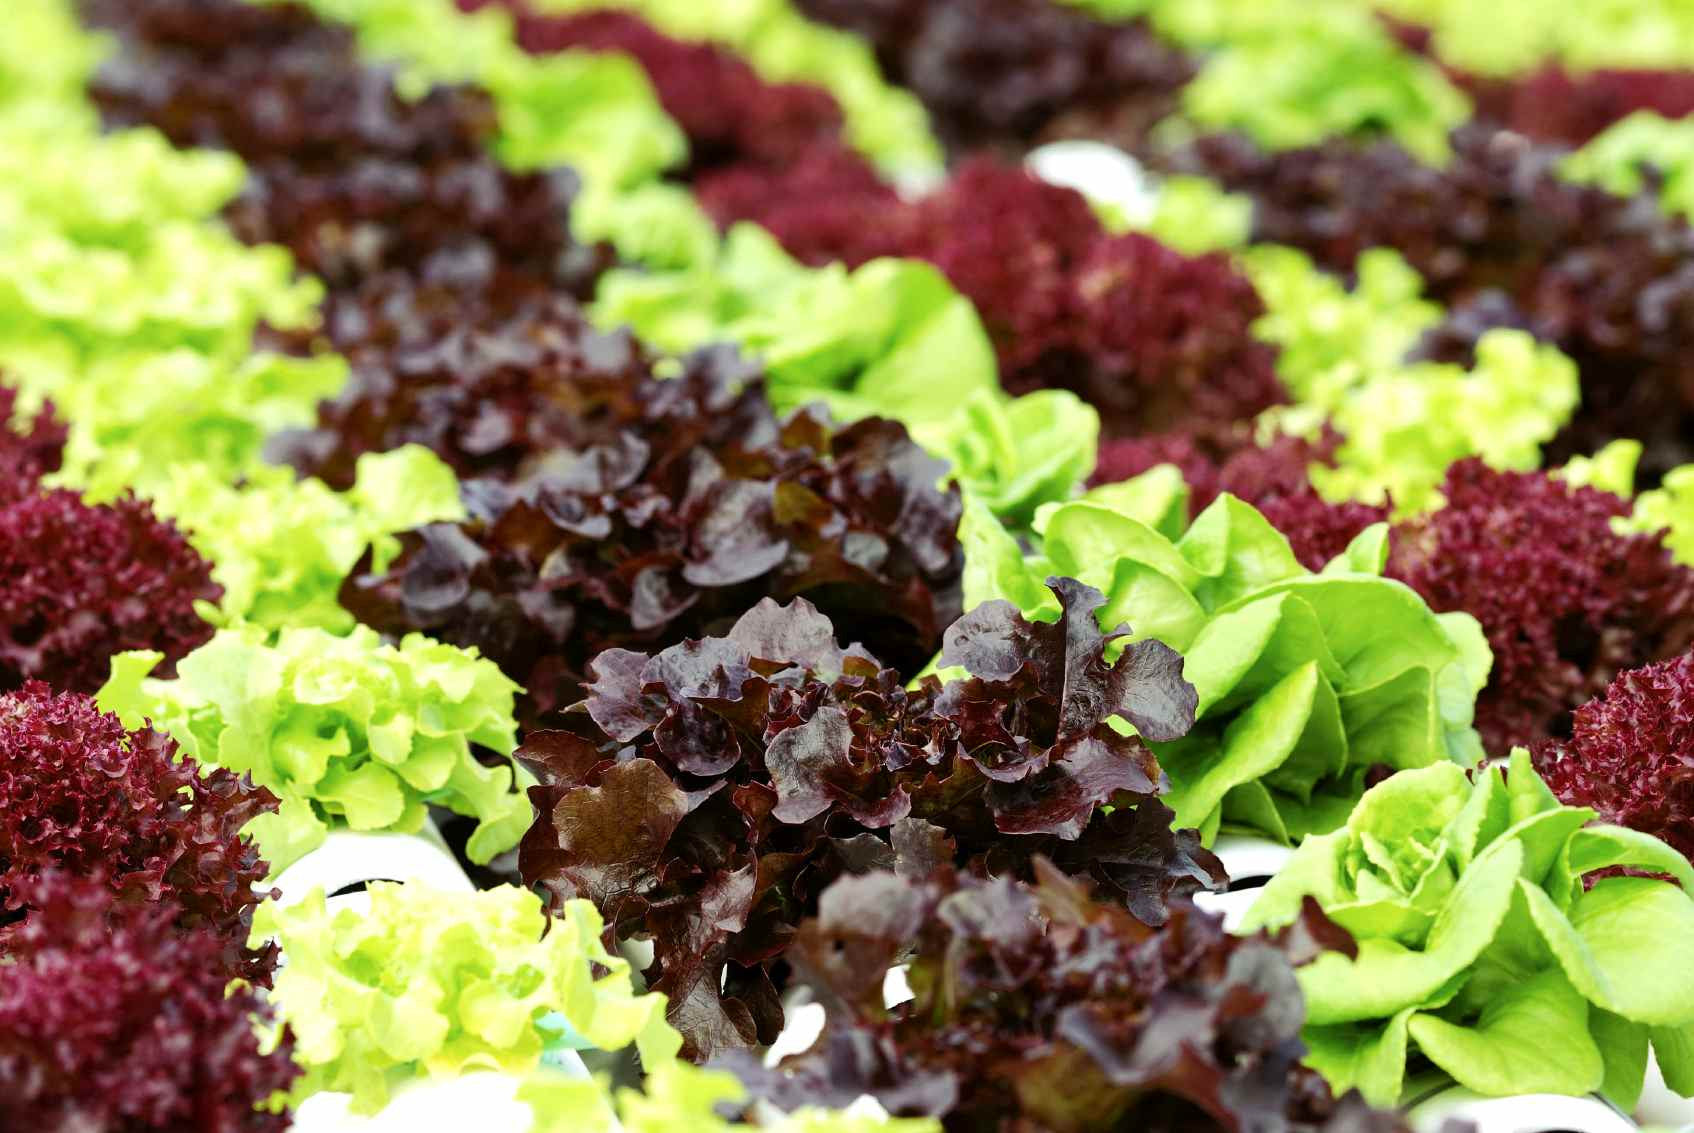 Nutrients for hydroponic lettuce